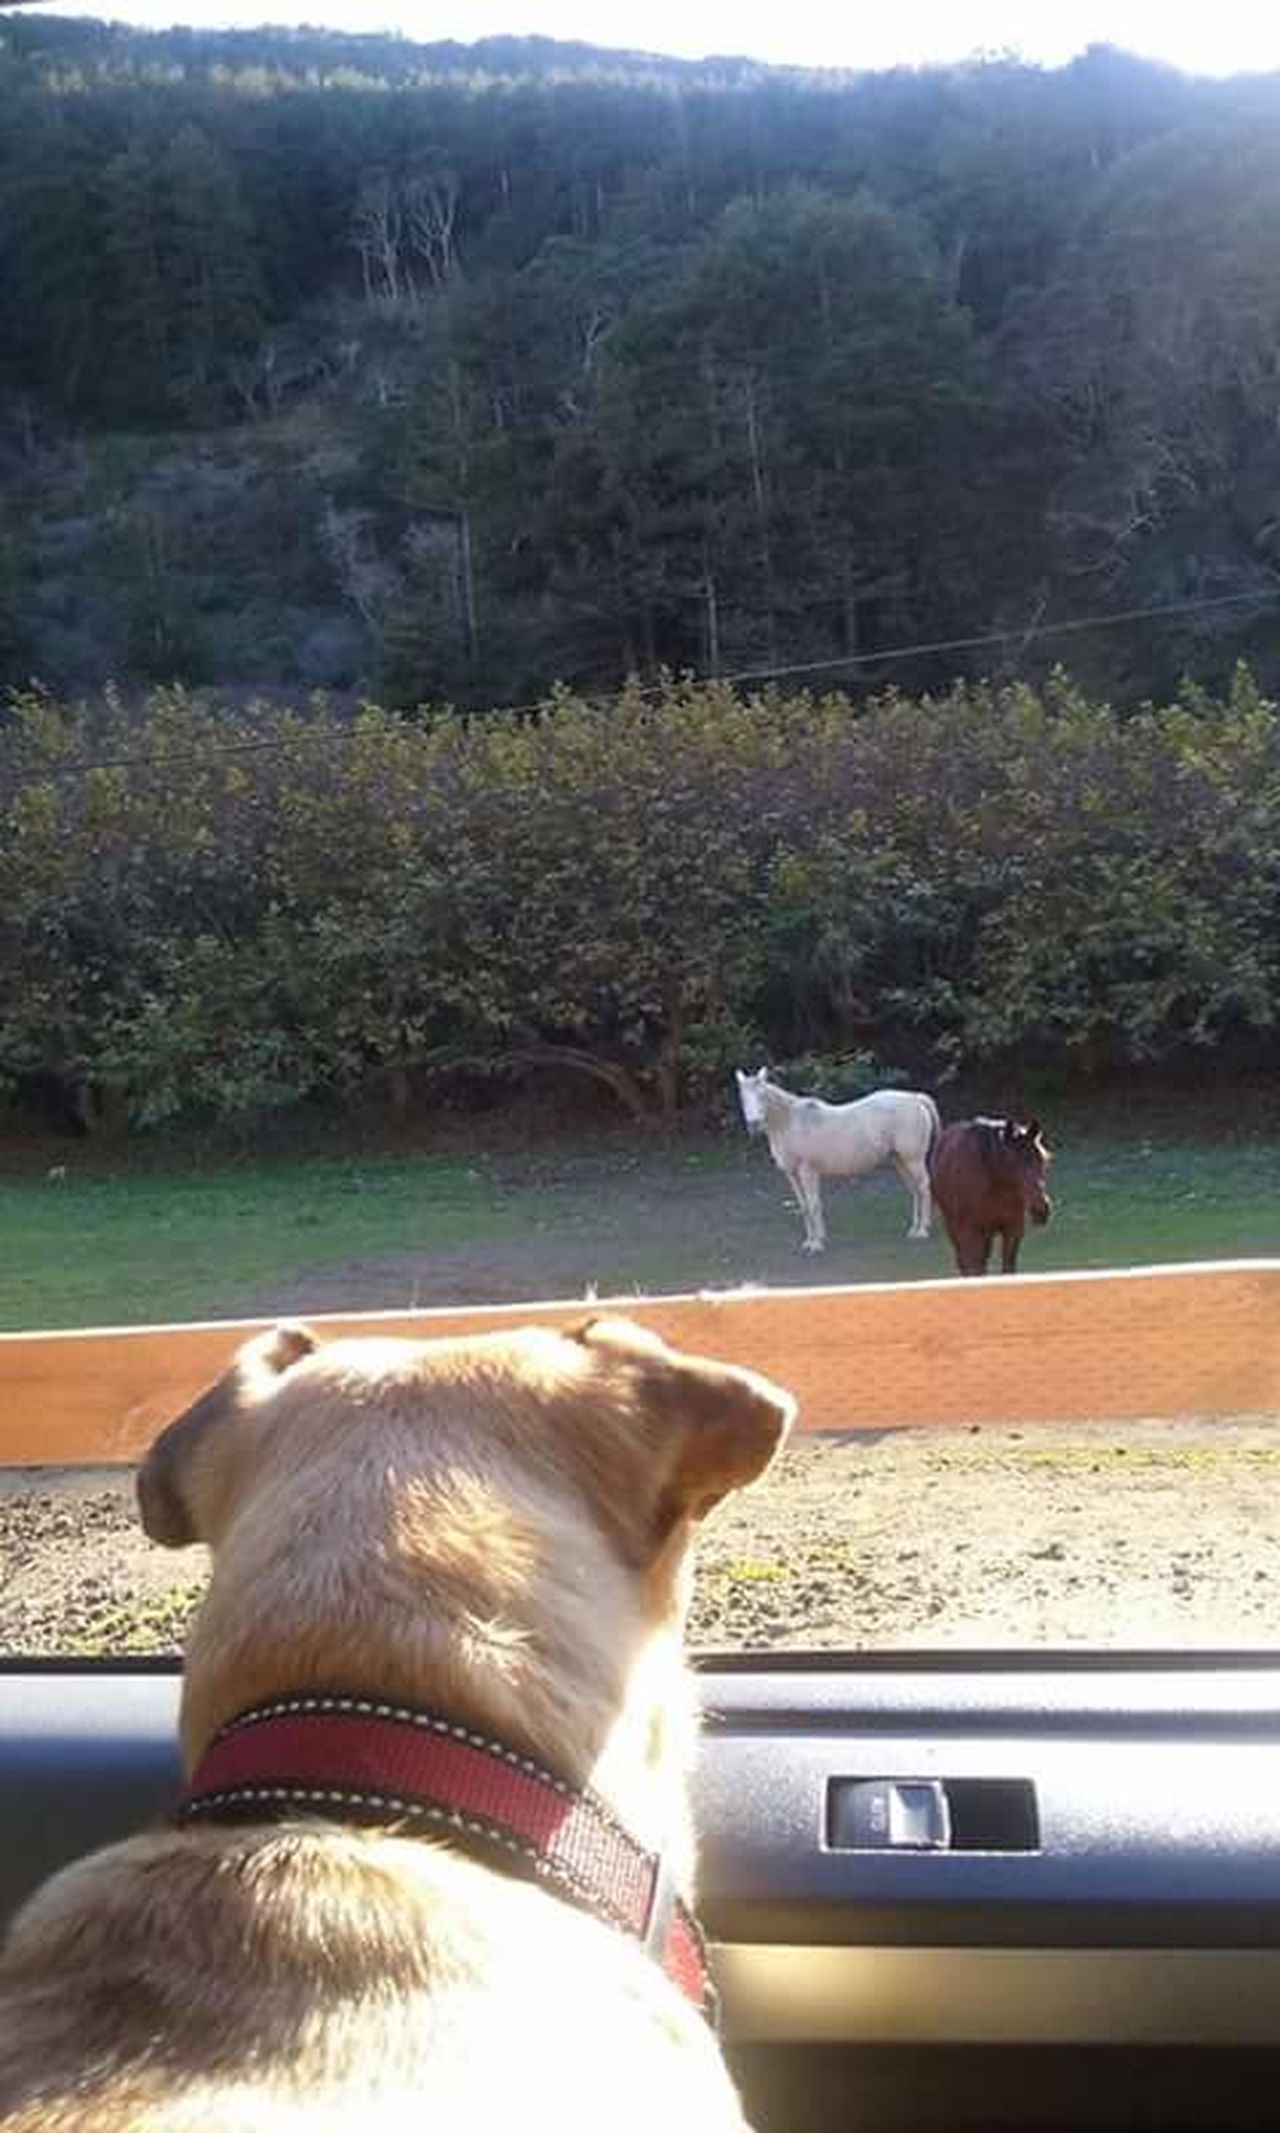 Animal Photography Mydog Chug Horses Dog Meets Horses Animallove Nature Trees Juliapfeiferstatepark